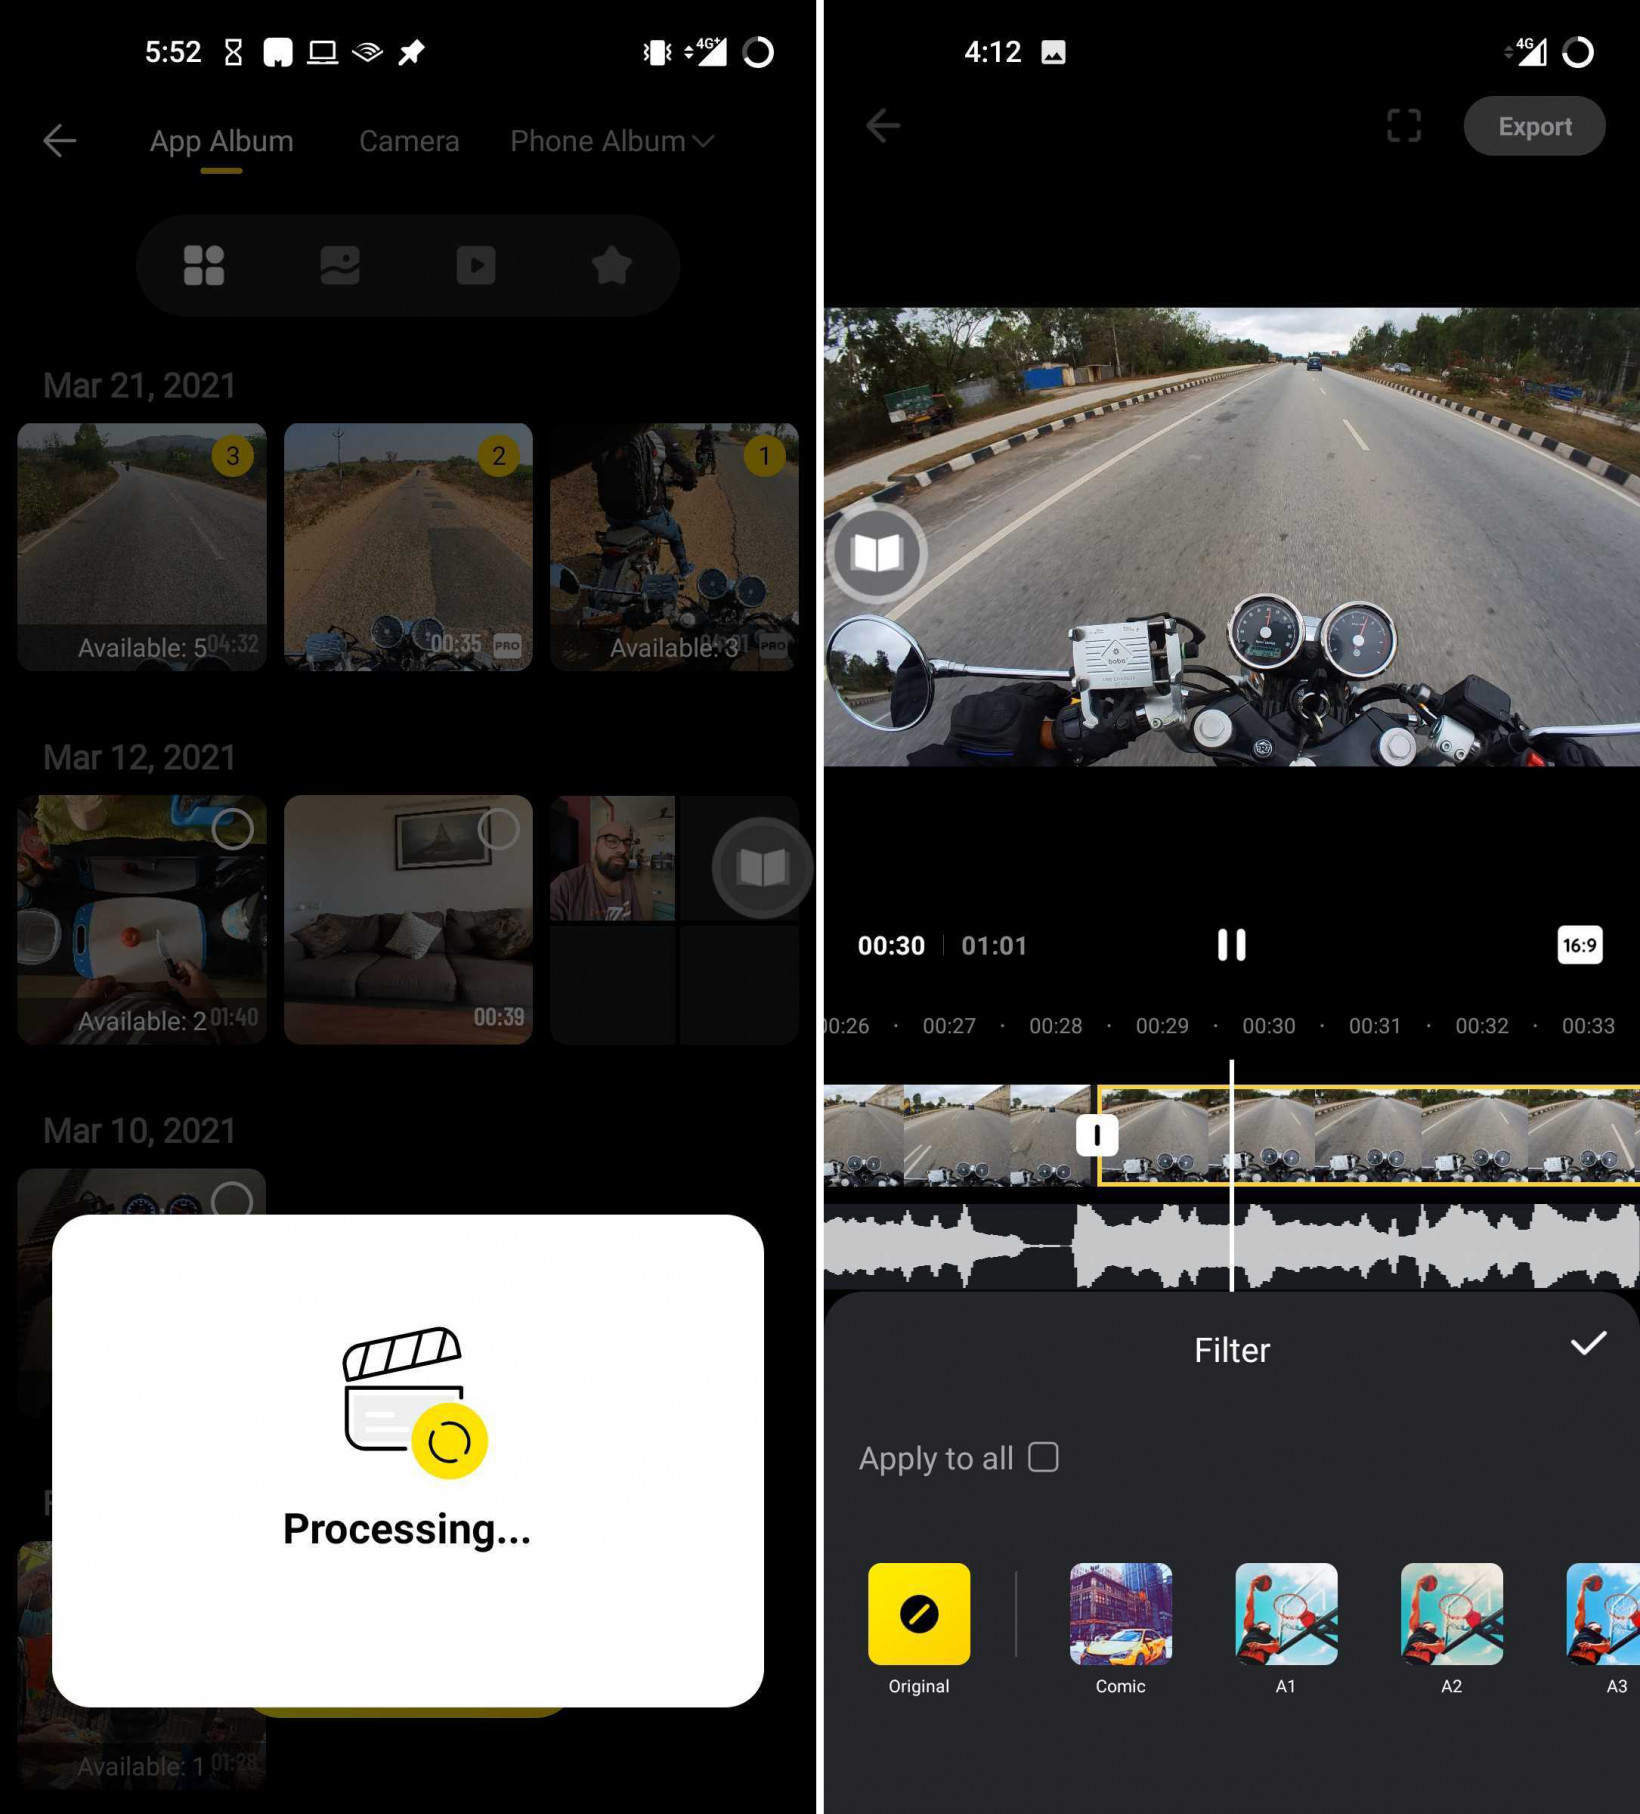 Insta360's mobile app makes it easy to import footage and automatically create highlight reels of your adventures